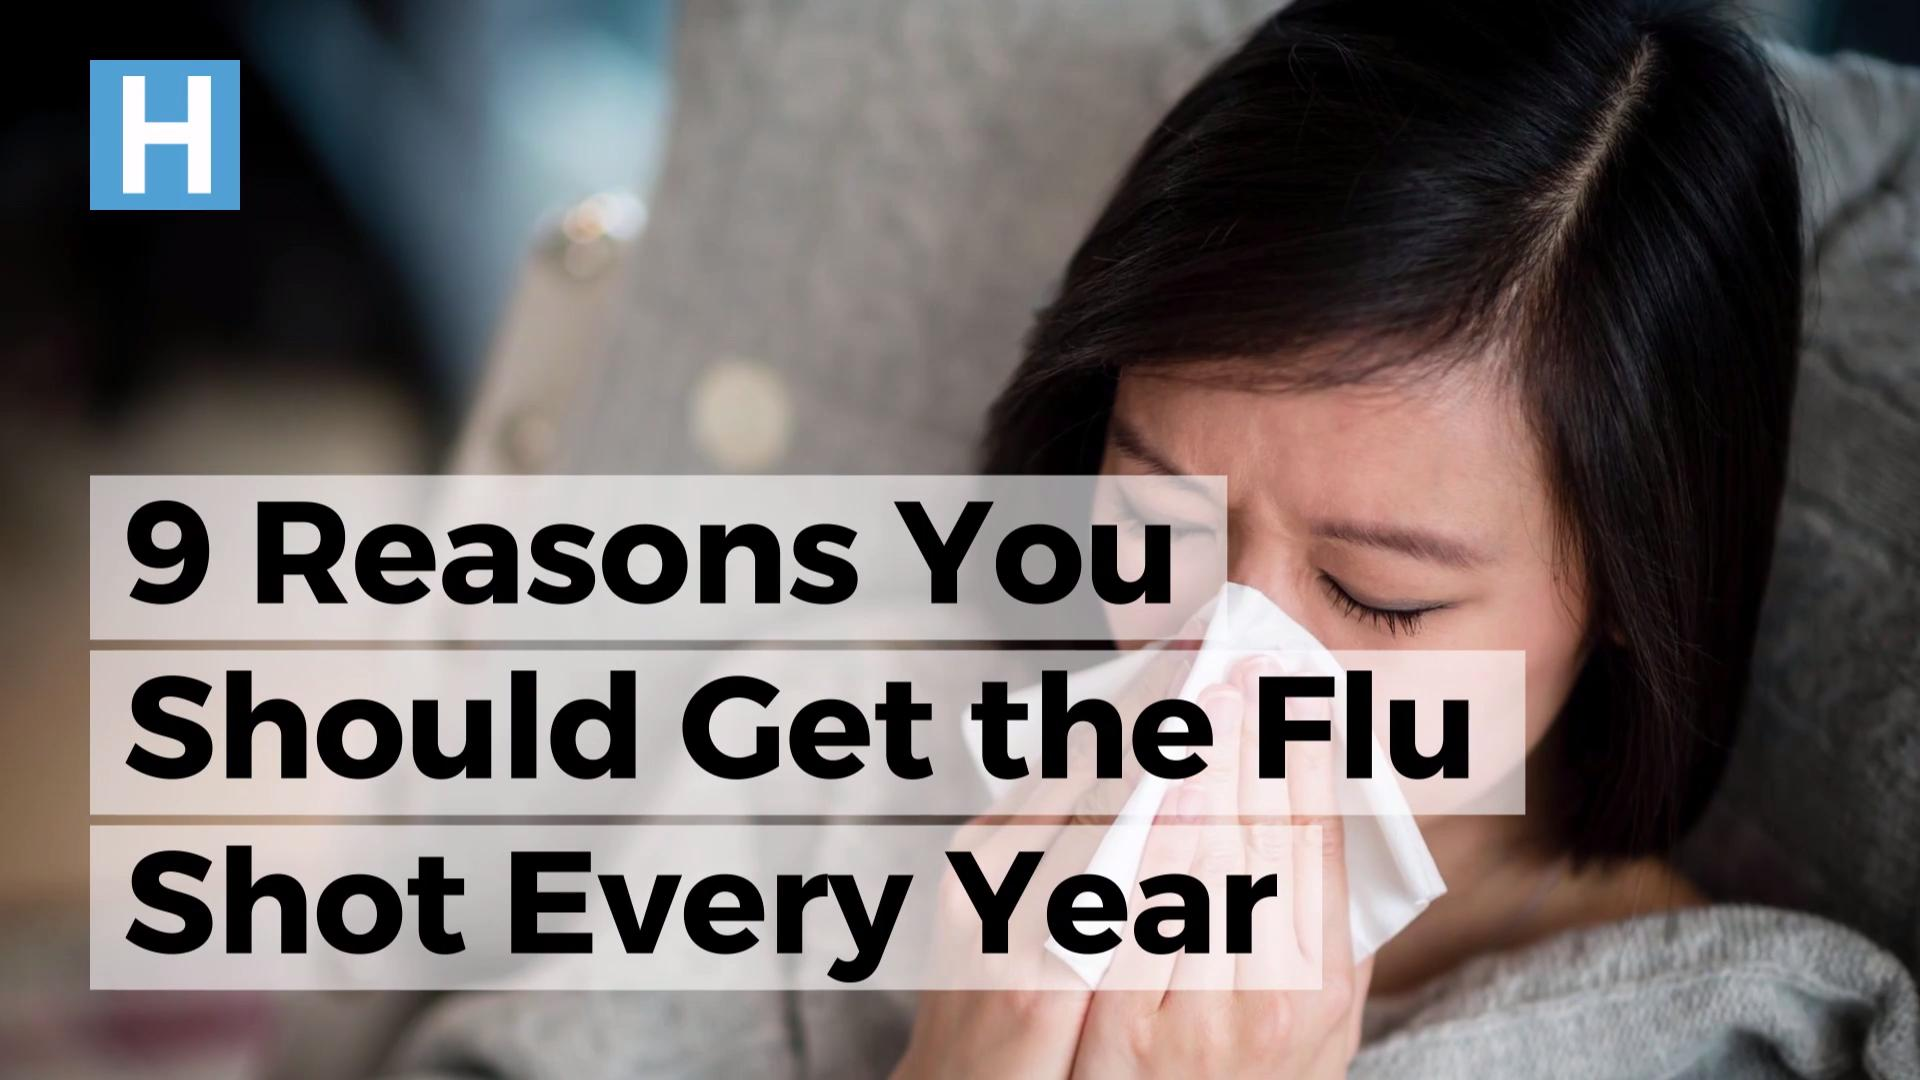 A flu shot won't help